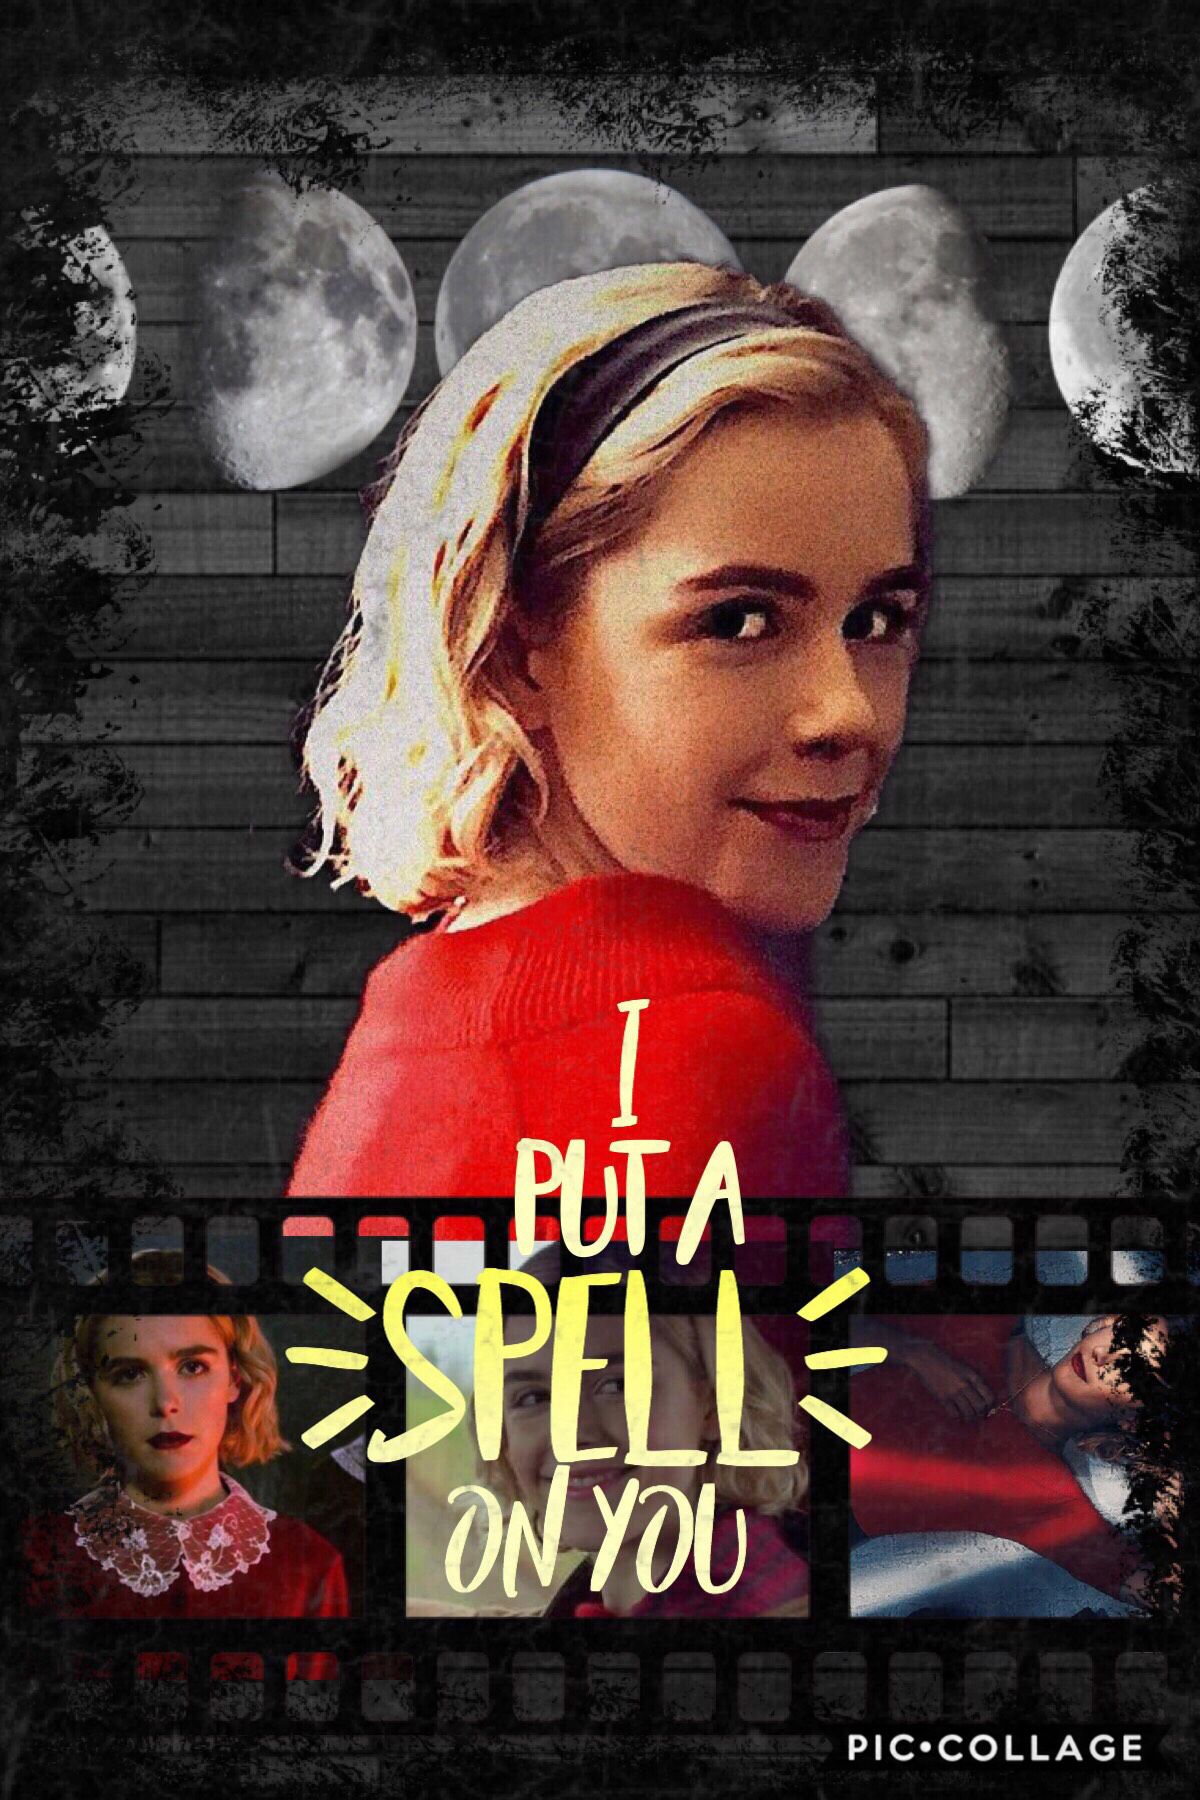 Tap🐄 Okay so real talk, I started watching Chilling Adventures of Sabrina last night and it's actually really good, so i just had to make an edit!  QOTD: What's a song you've been obsessively listening to?